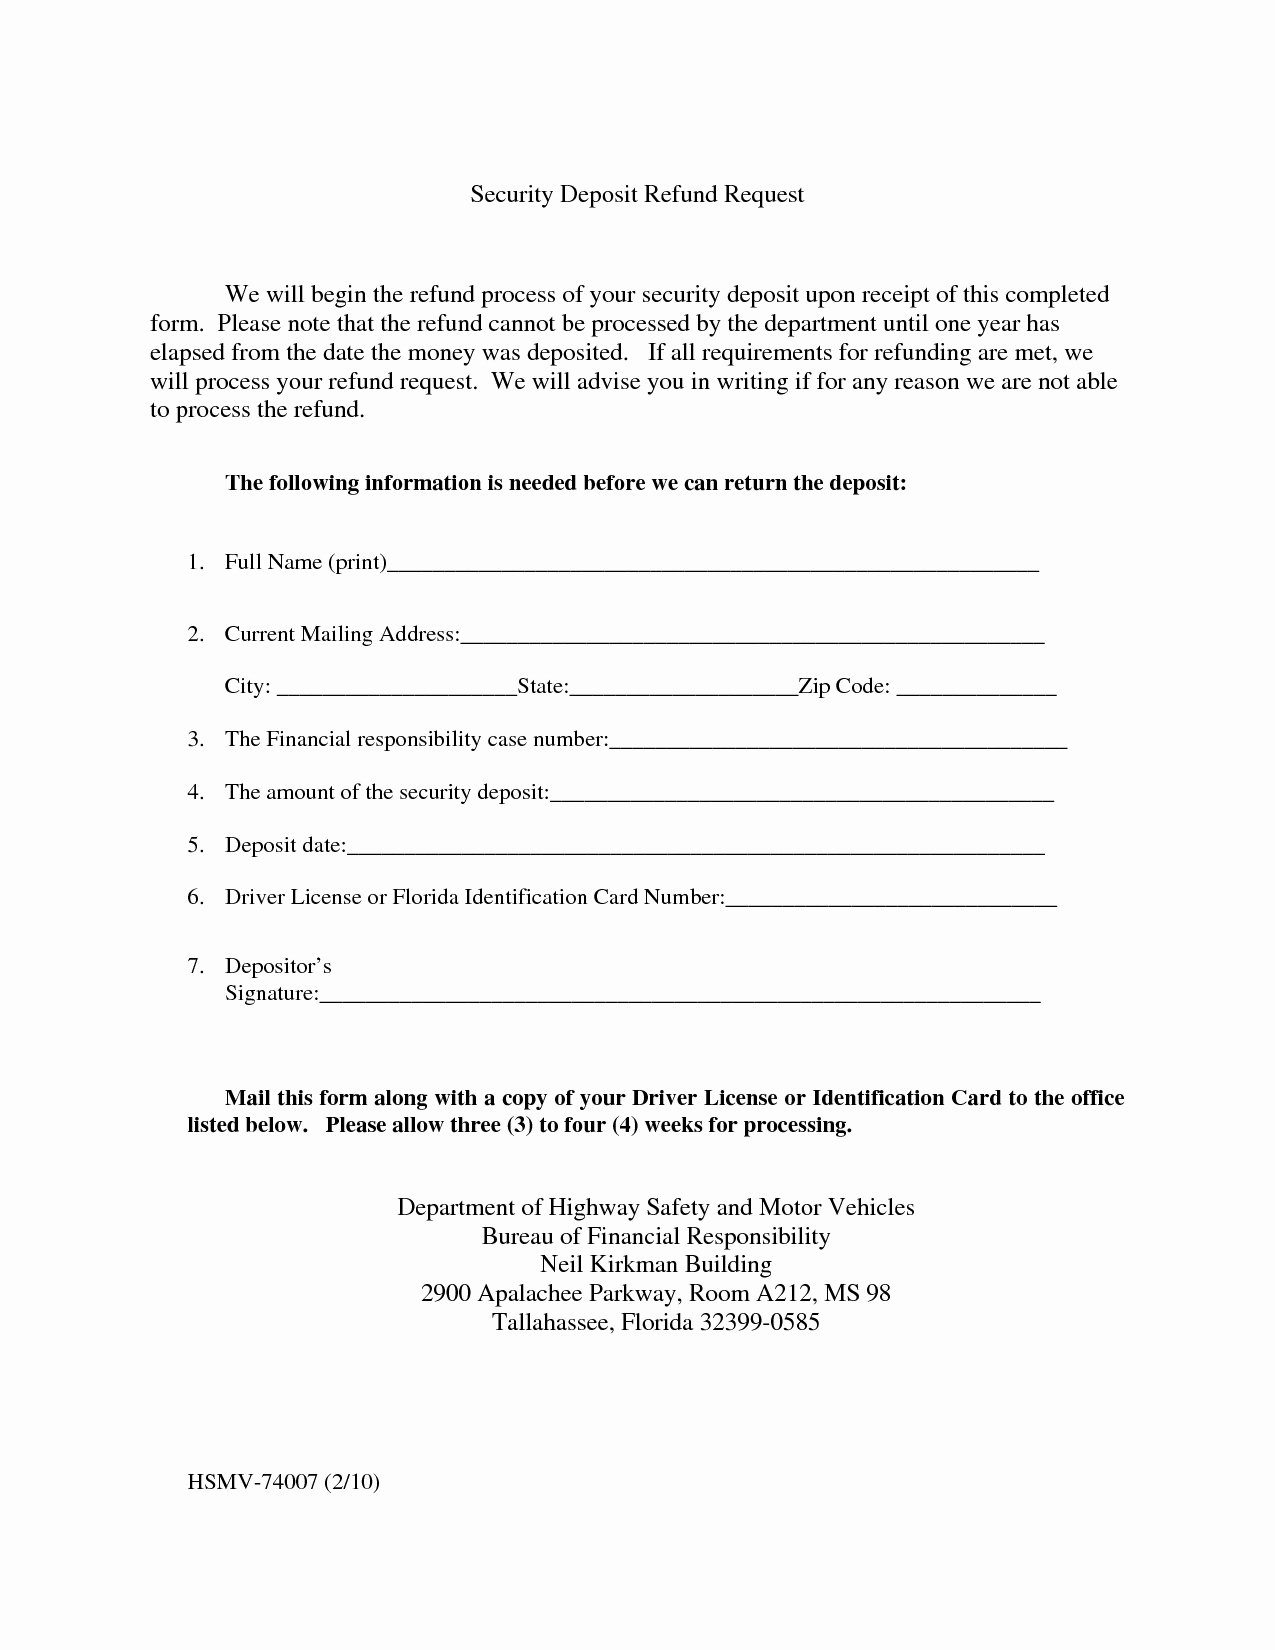 Security Deposit Letter format Beautiful Security Deposit Refund Letter 2018